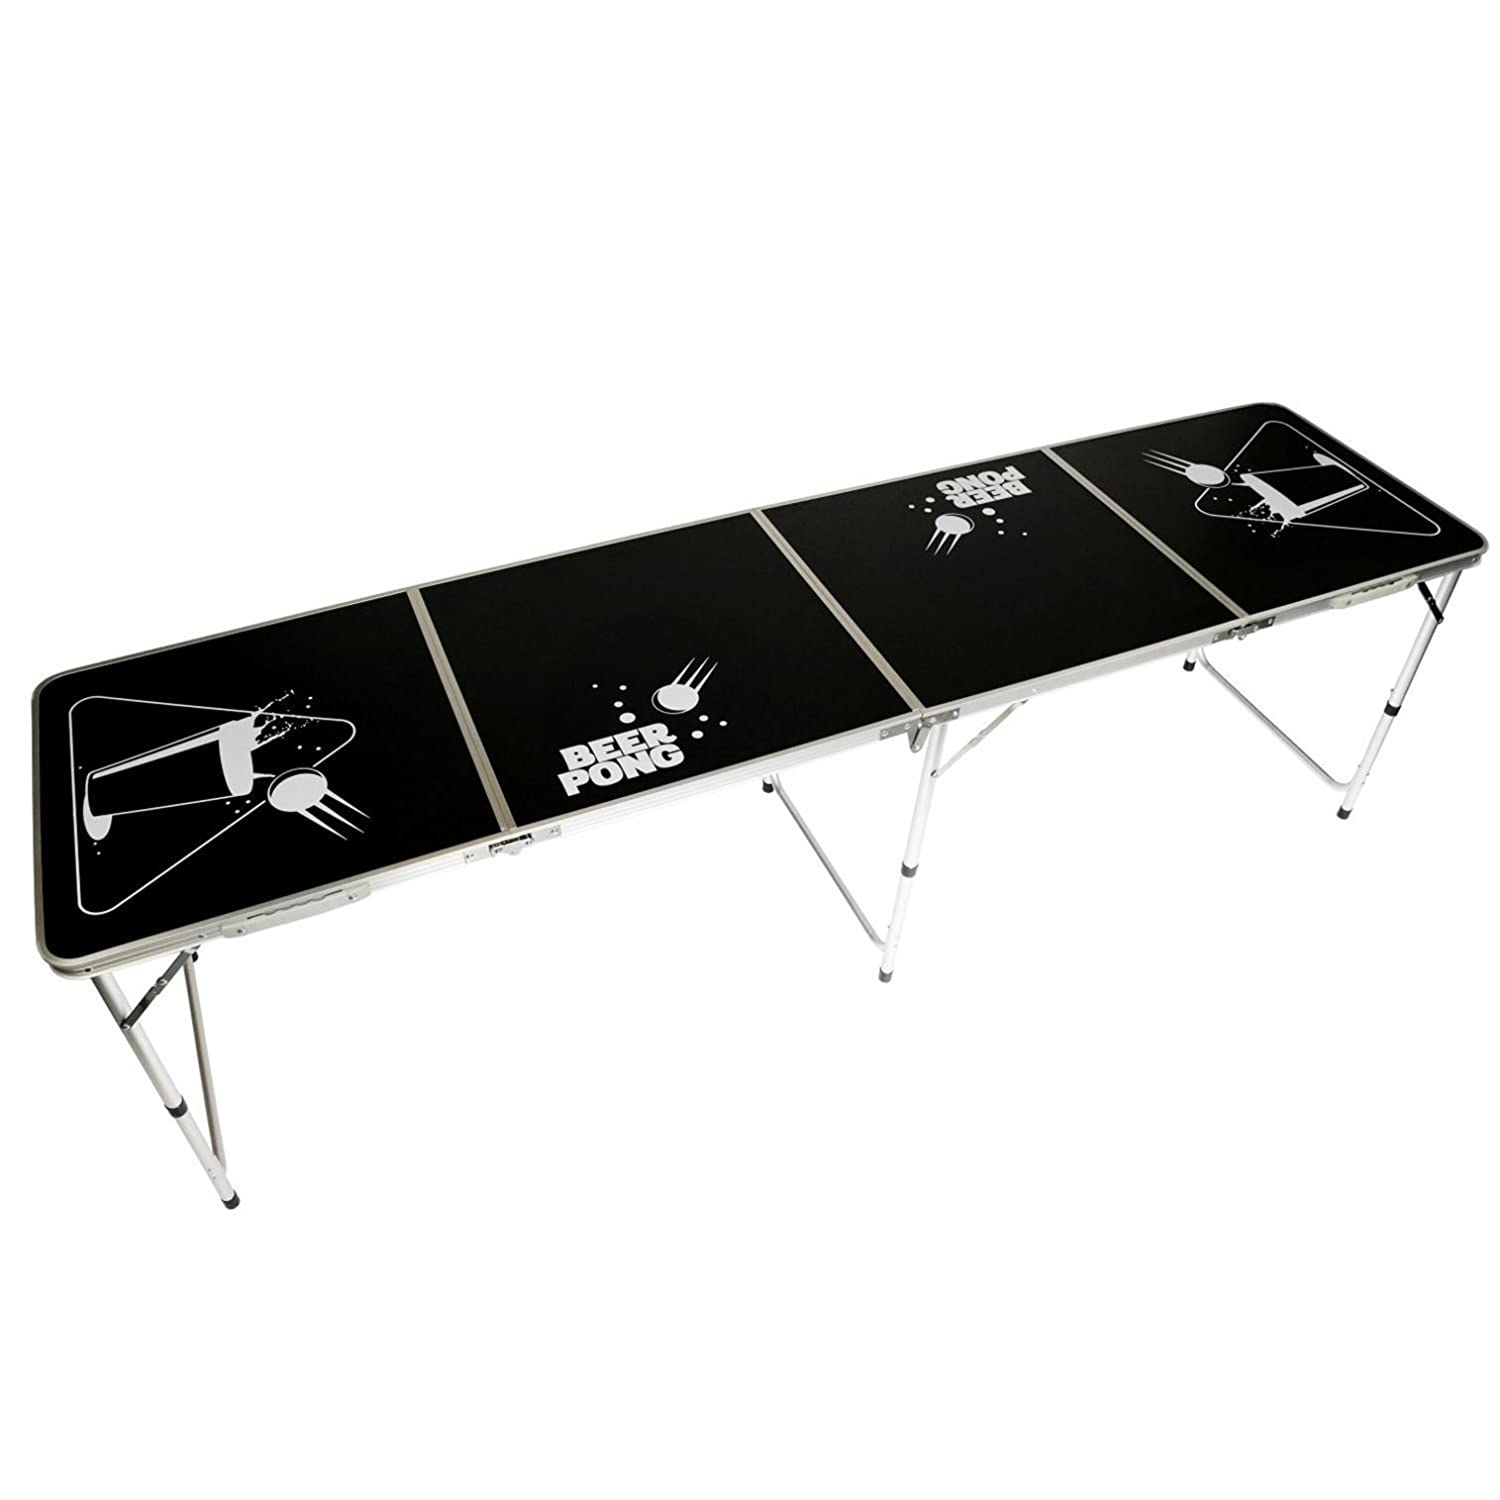 Oypla Official Size 8 Foot Folding Beer Pong Table BBQ Drinking Party 3154OYP